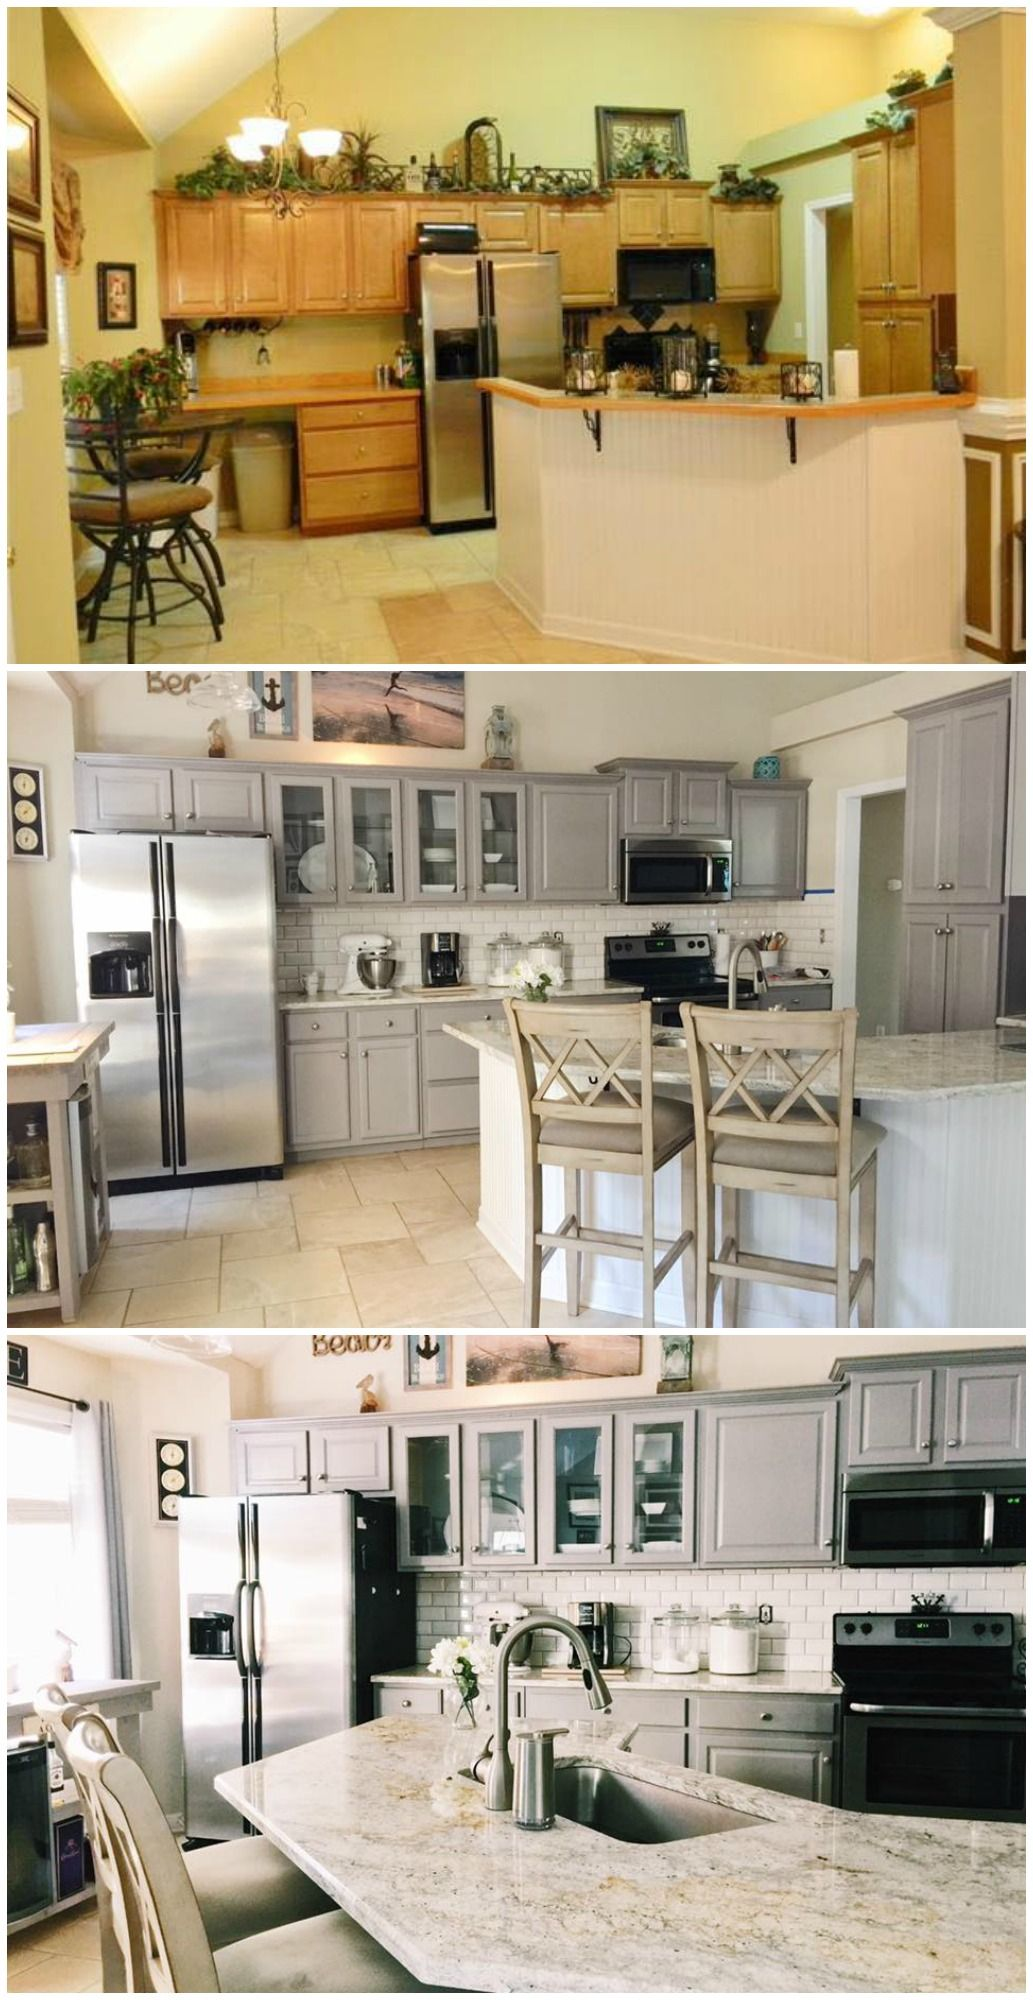 easy kitchen remodel aid knives painted cabinets stainless steal appliances granite white tile backsplash wall paint